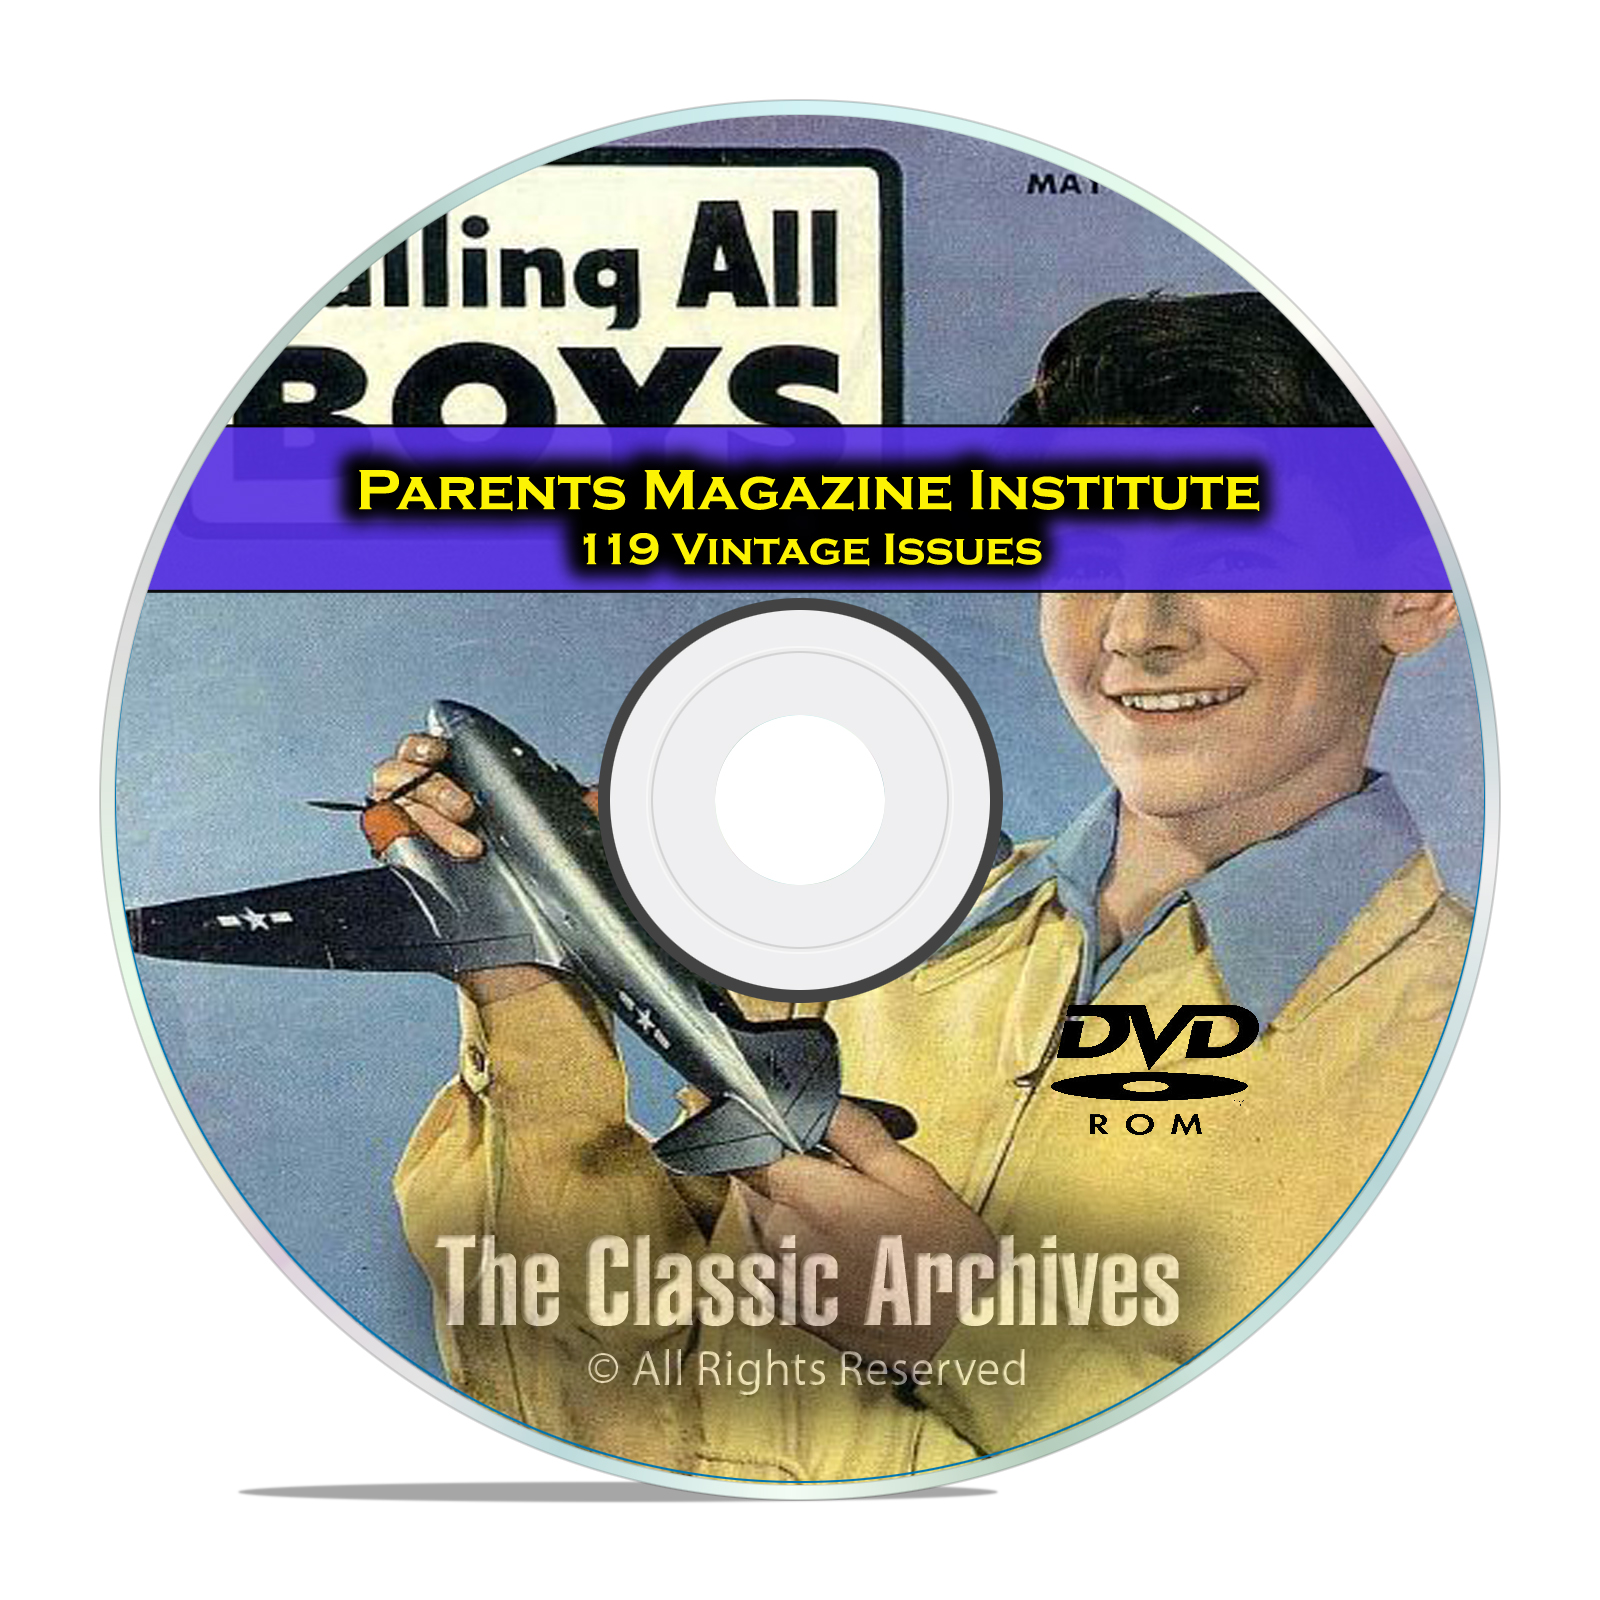 Parents Magazine Institute, Calling All Boys, Girls, Golden Age Comics DVD